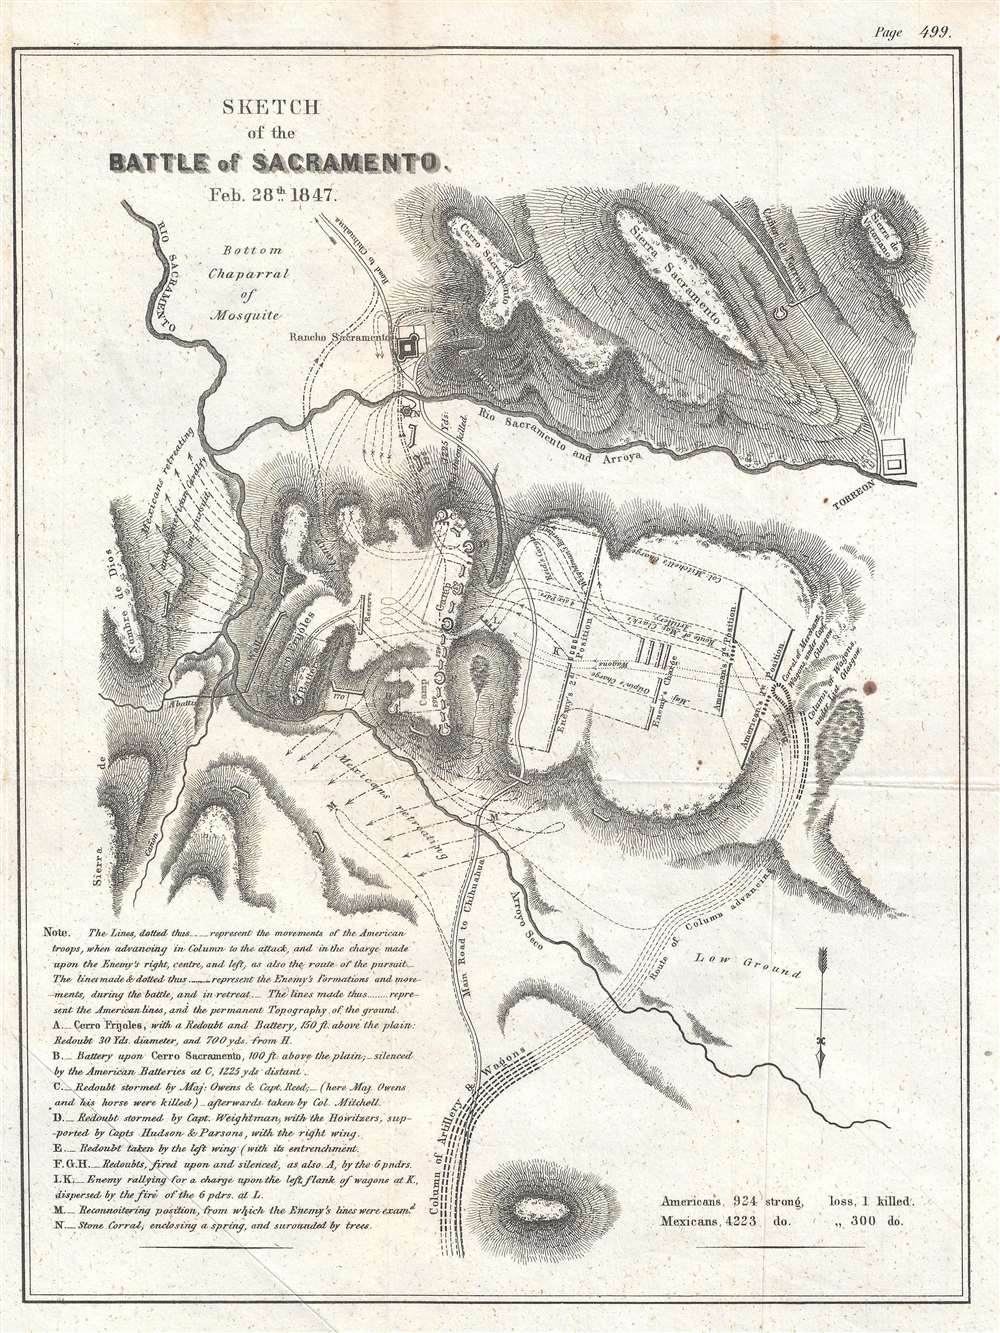 Sketch of the Battle of Sacramento Feb. 28th, 1847.